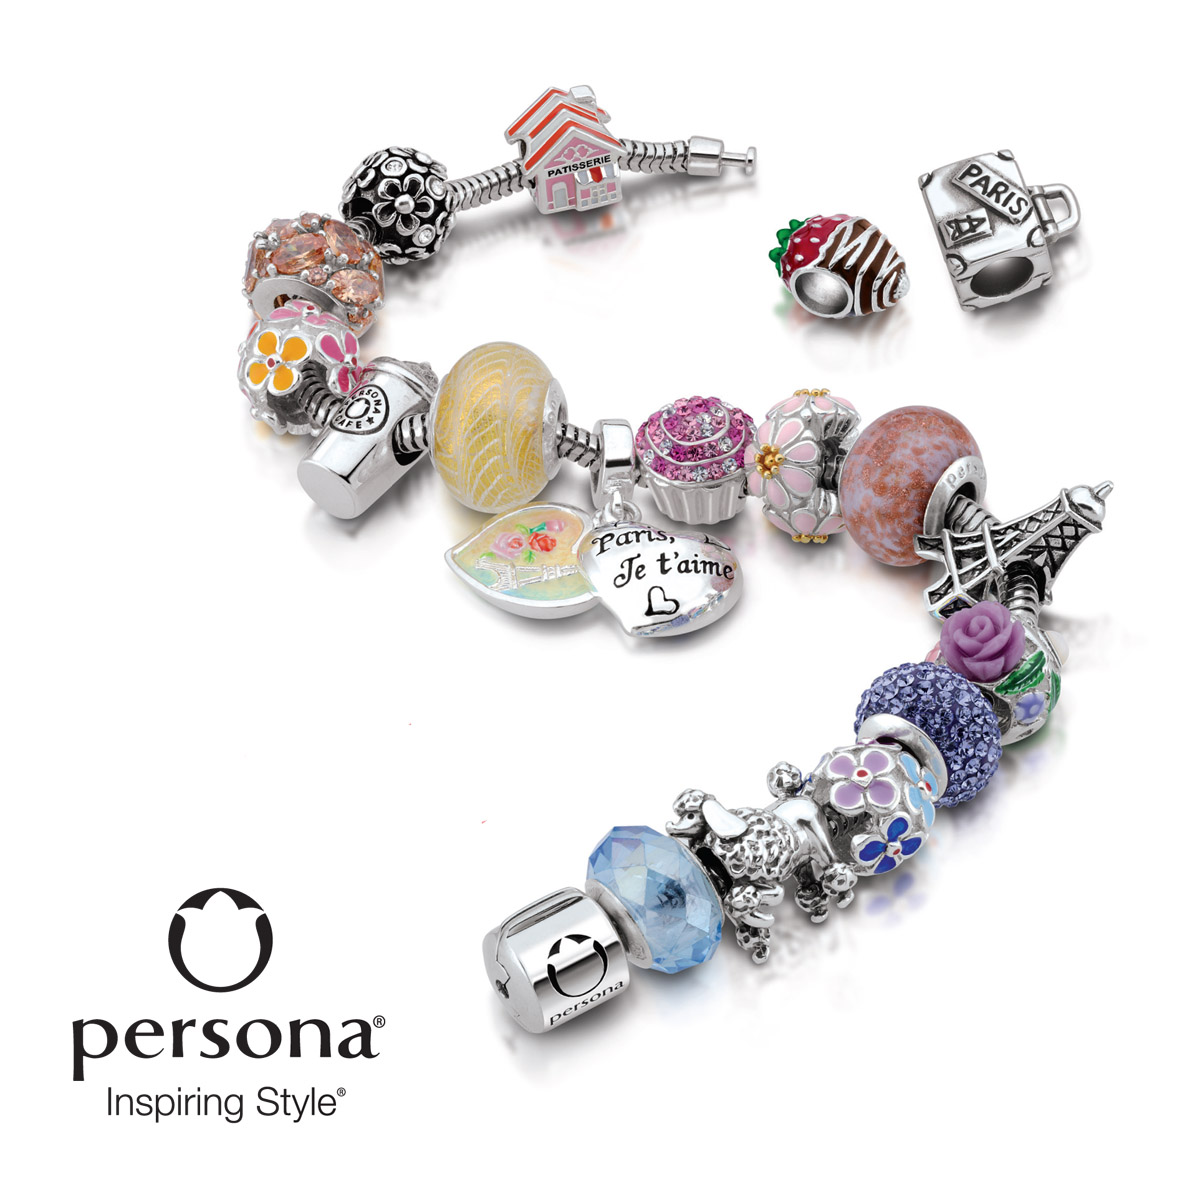 persona springtime in charms addict